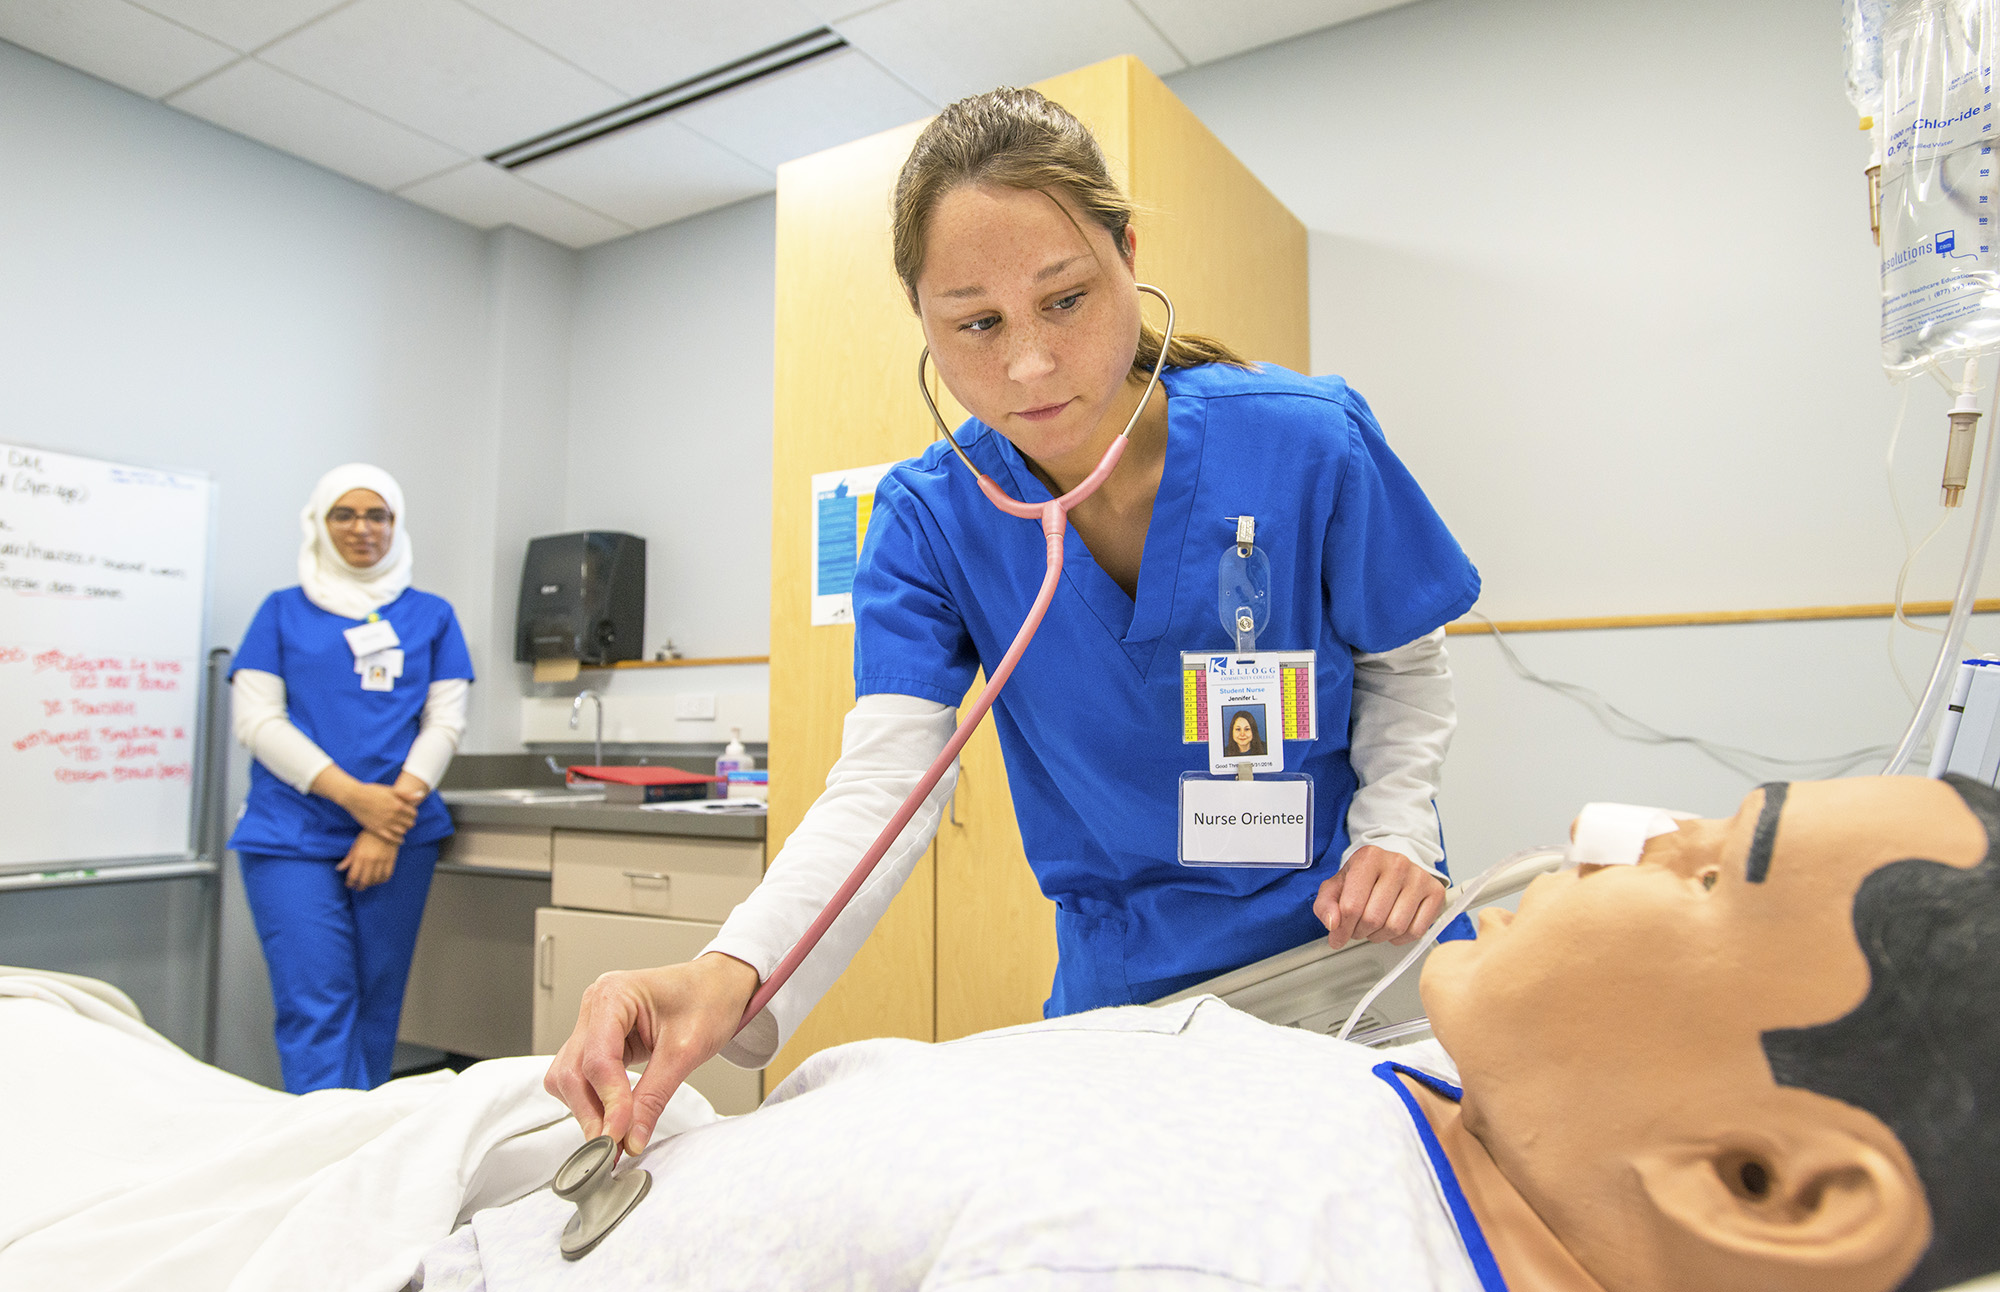 KCC Nursing students work with a patient simulator in a Nursing Lab on campus.